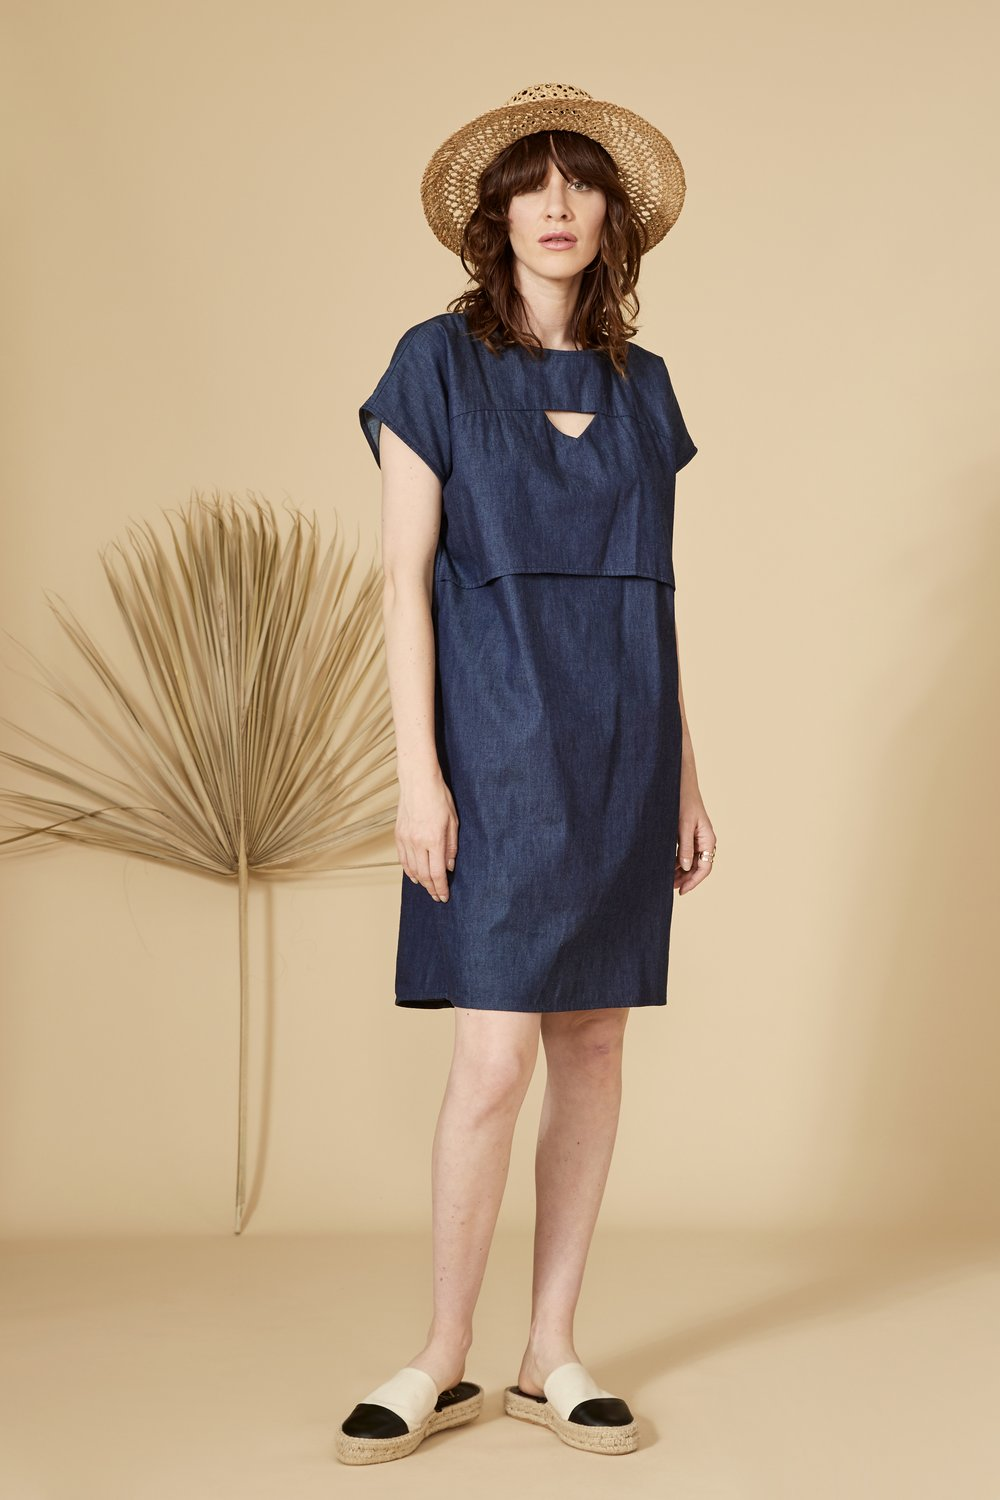 Denim cut-out dress with short sleeve, round collar and mid-thigh length. 70% viscose, 30% linen. Hand wash in cold water, air dry flat. Designed and Made in Montréal.